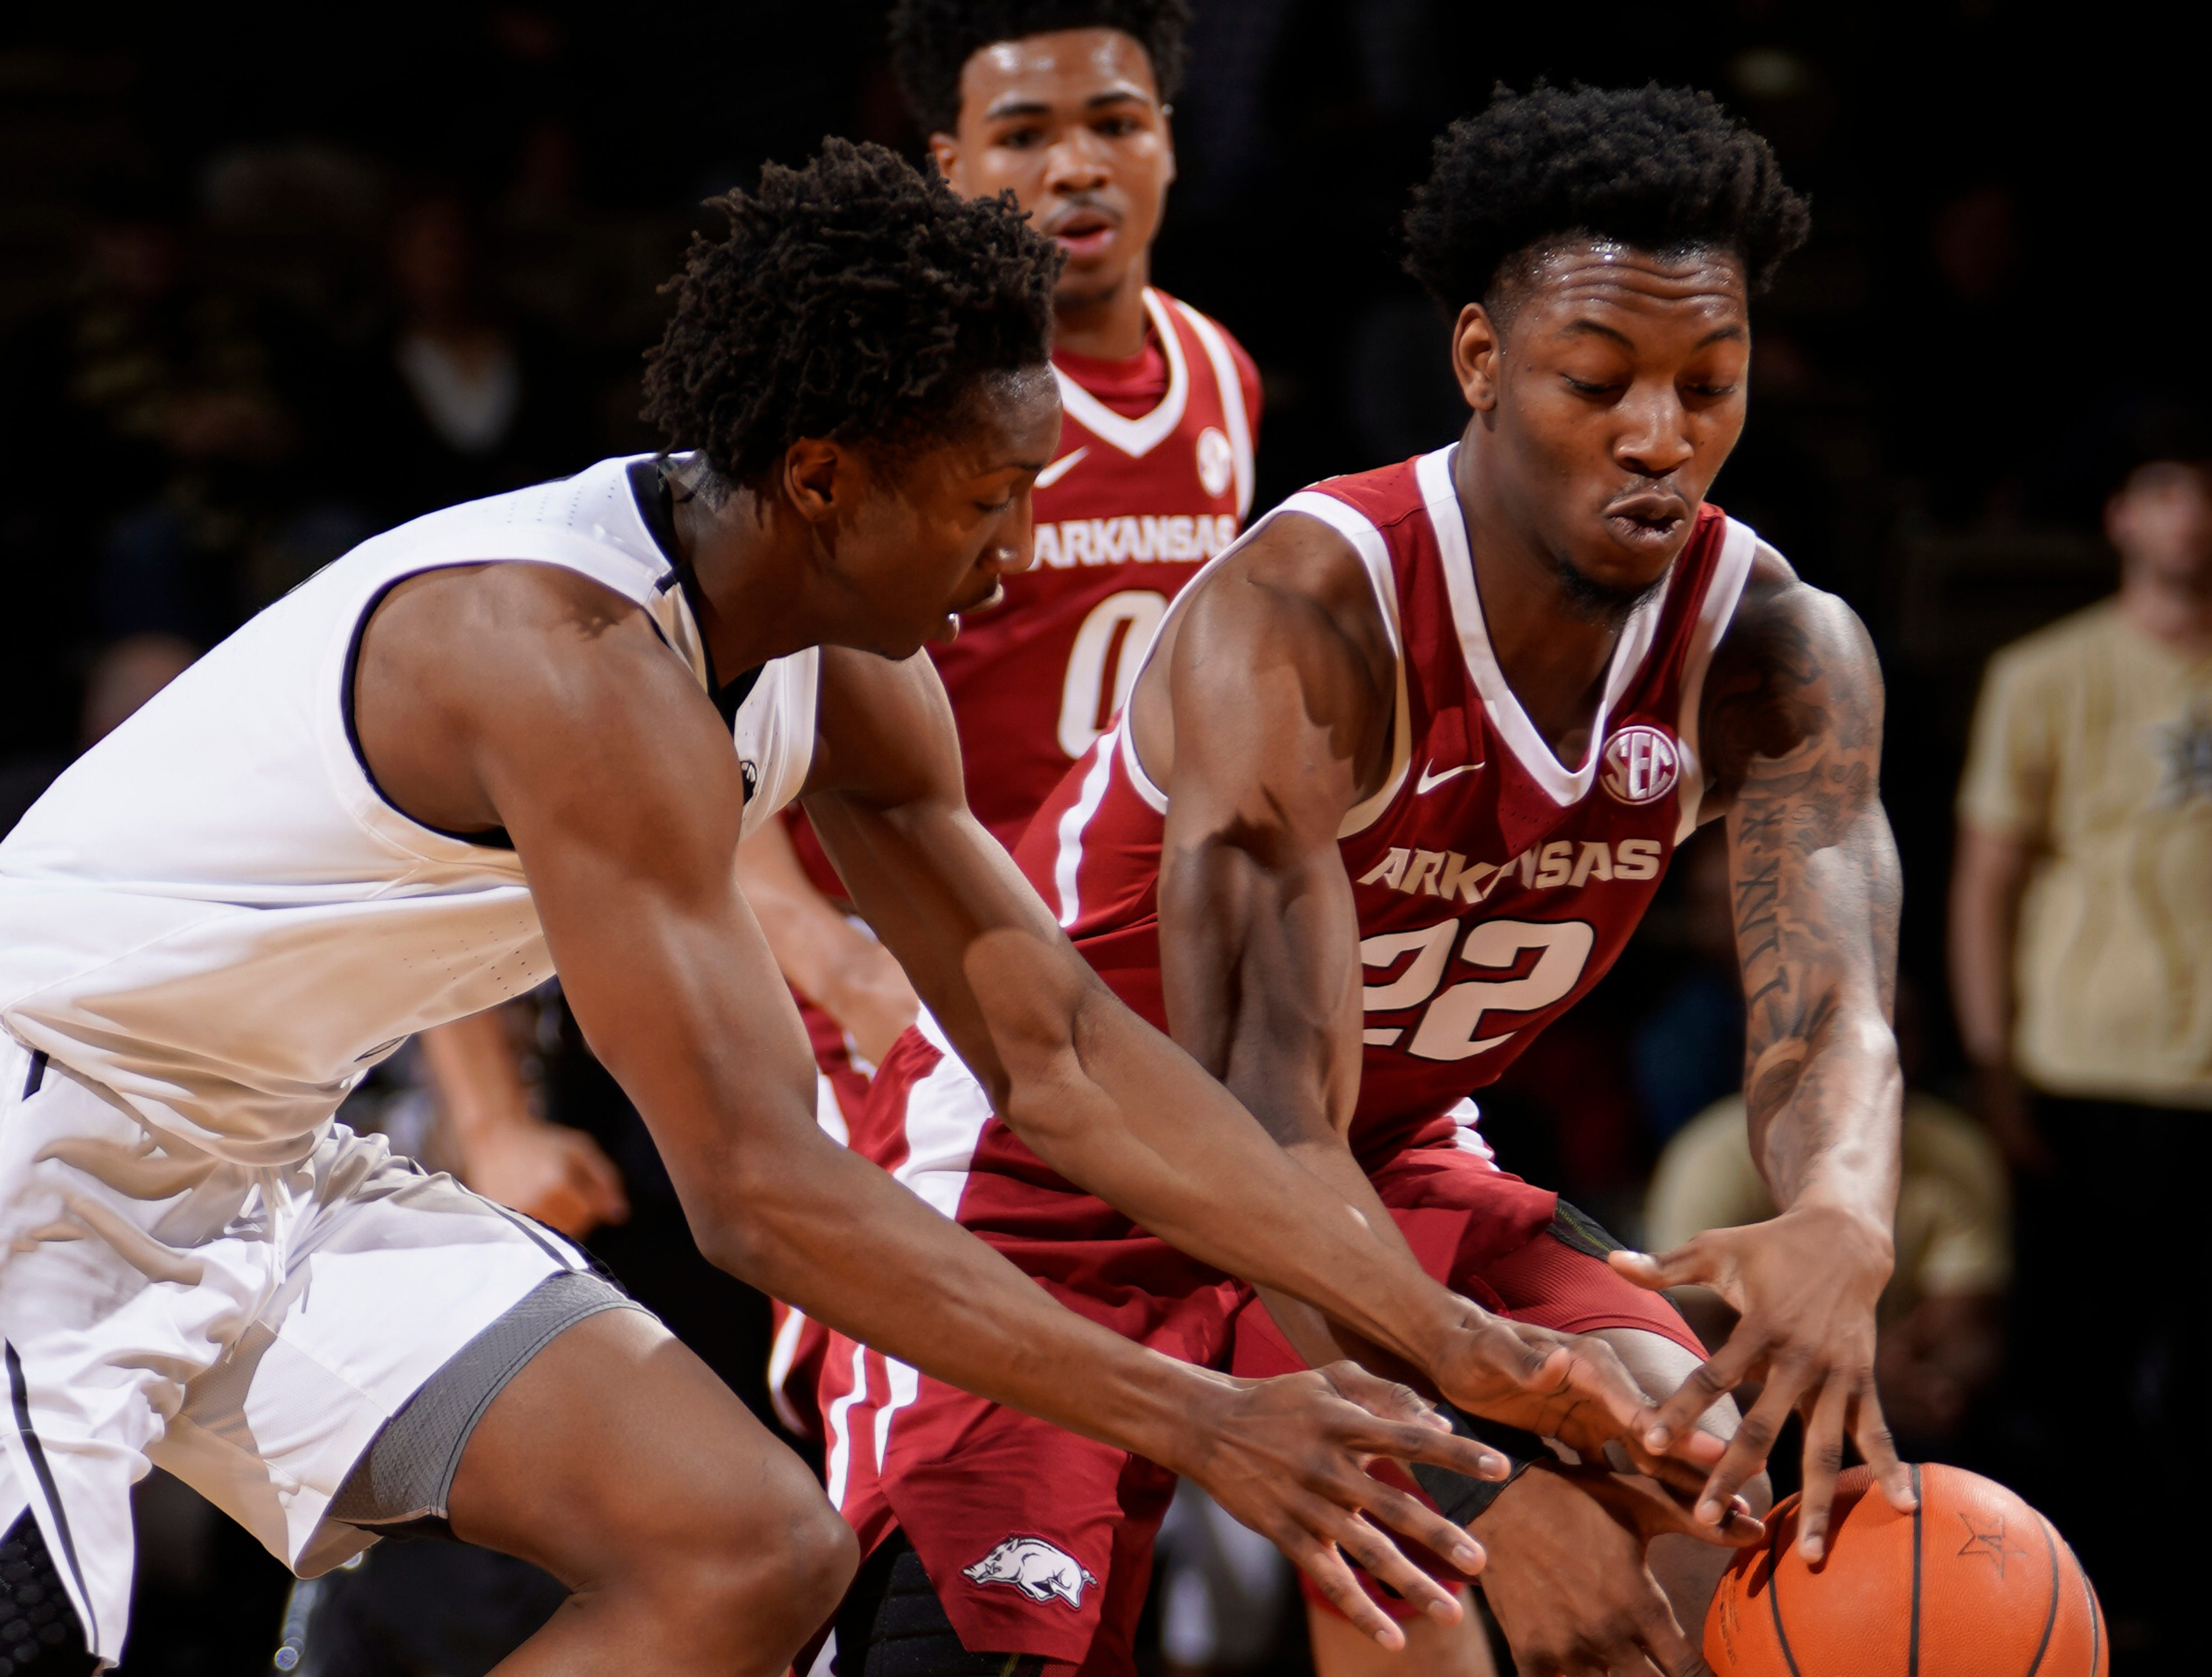 Vanderbilt guard Saben Lee (0) tries to take the ball from Arkansas forward Gabe Osabuohien (22) during the first half at Memorial Gym Wednesday, March 6, 2019 in Nashville, Tenn.